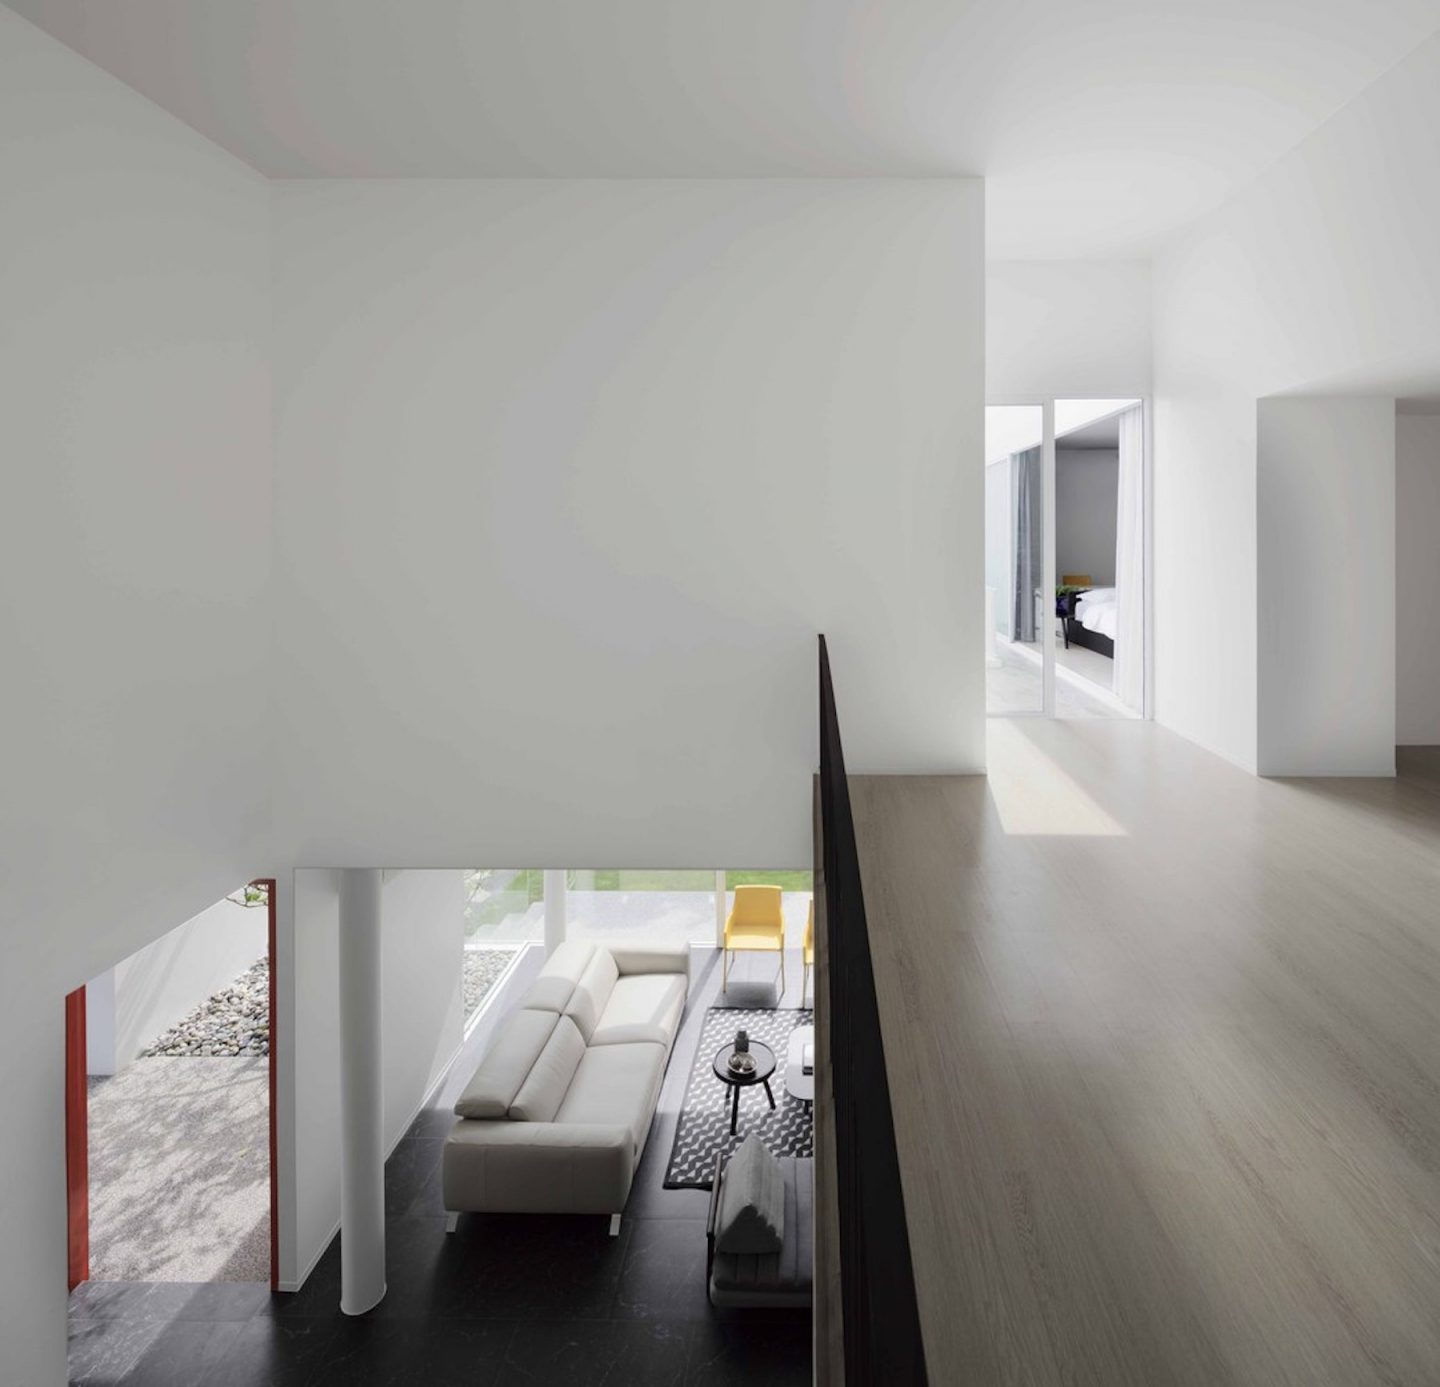 iGNANT-Architecture-Ayutt-And-Associates-Design-White-Box-House-17